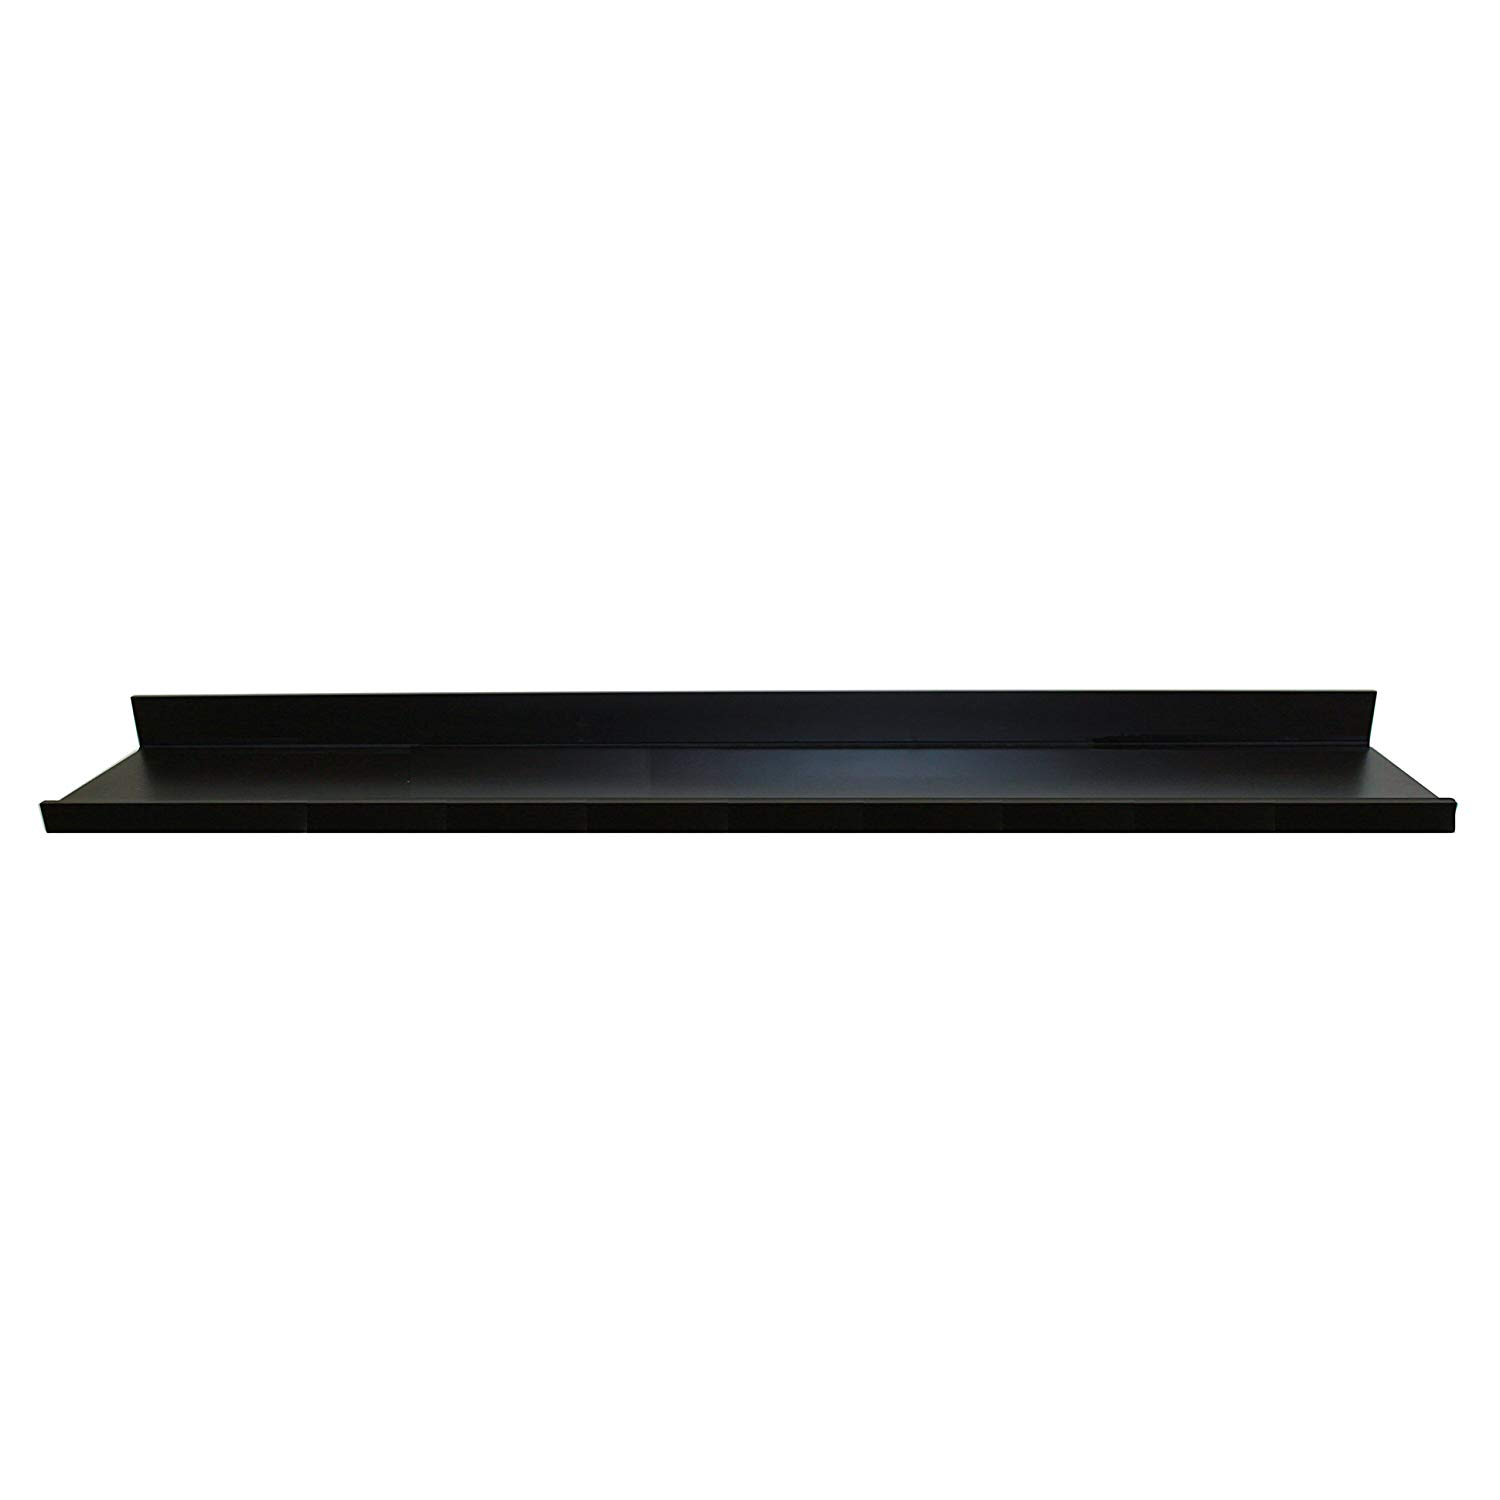 inplace shelving floating shelf with ture inch espresso ledge black wide deep high home improvement kallax white single ott best coat rack french cleat hooks shelves and brackets